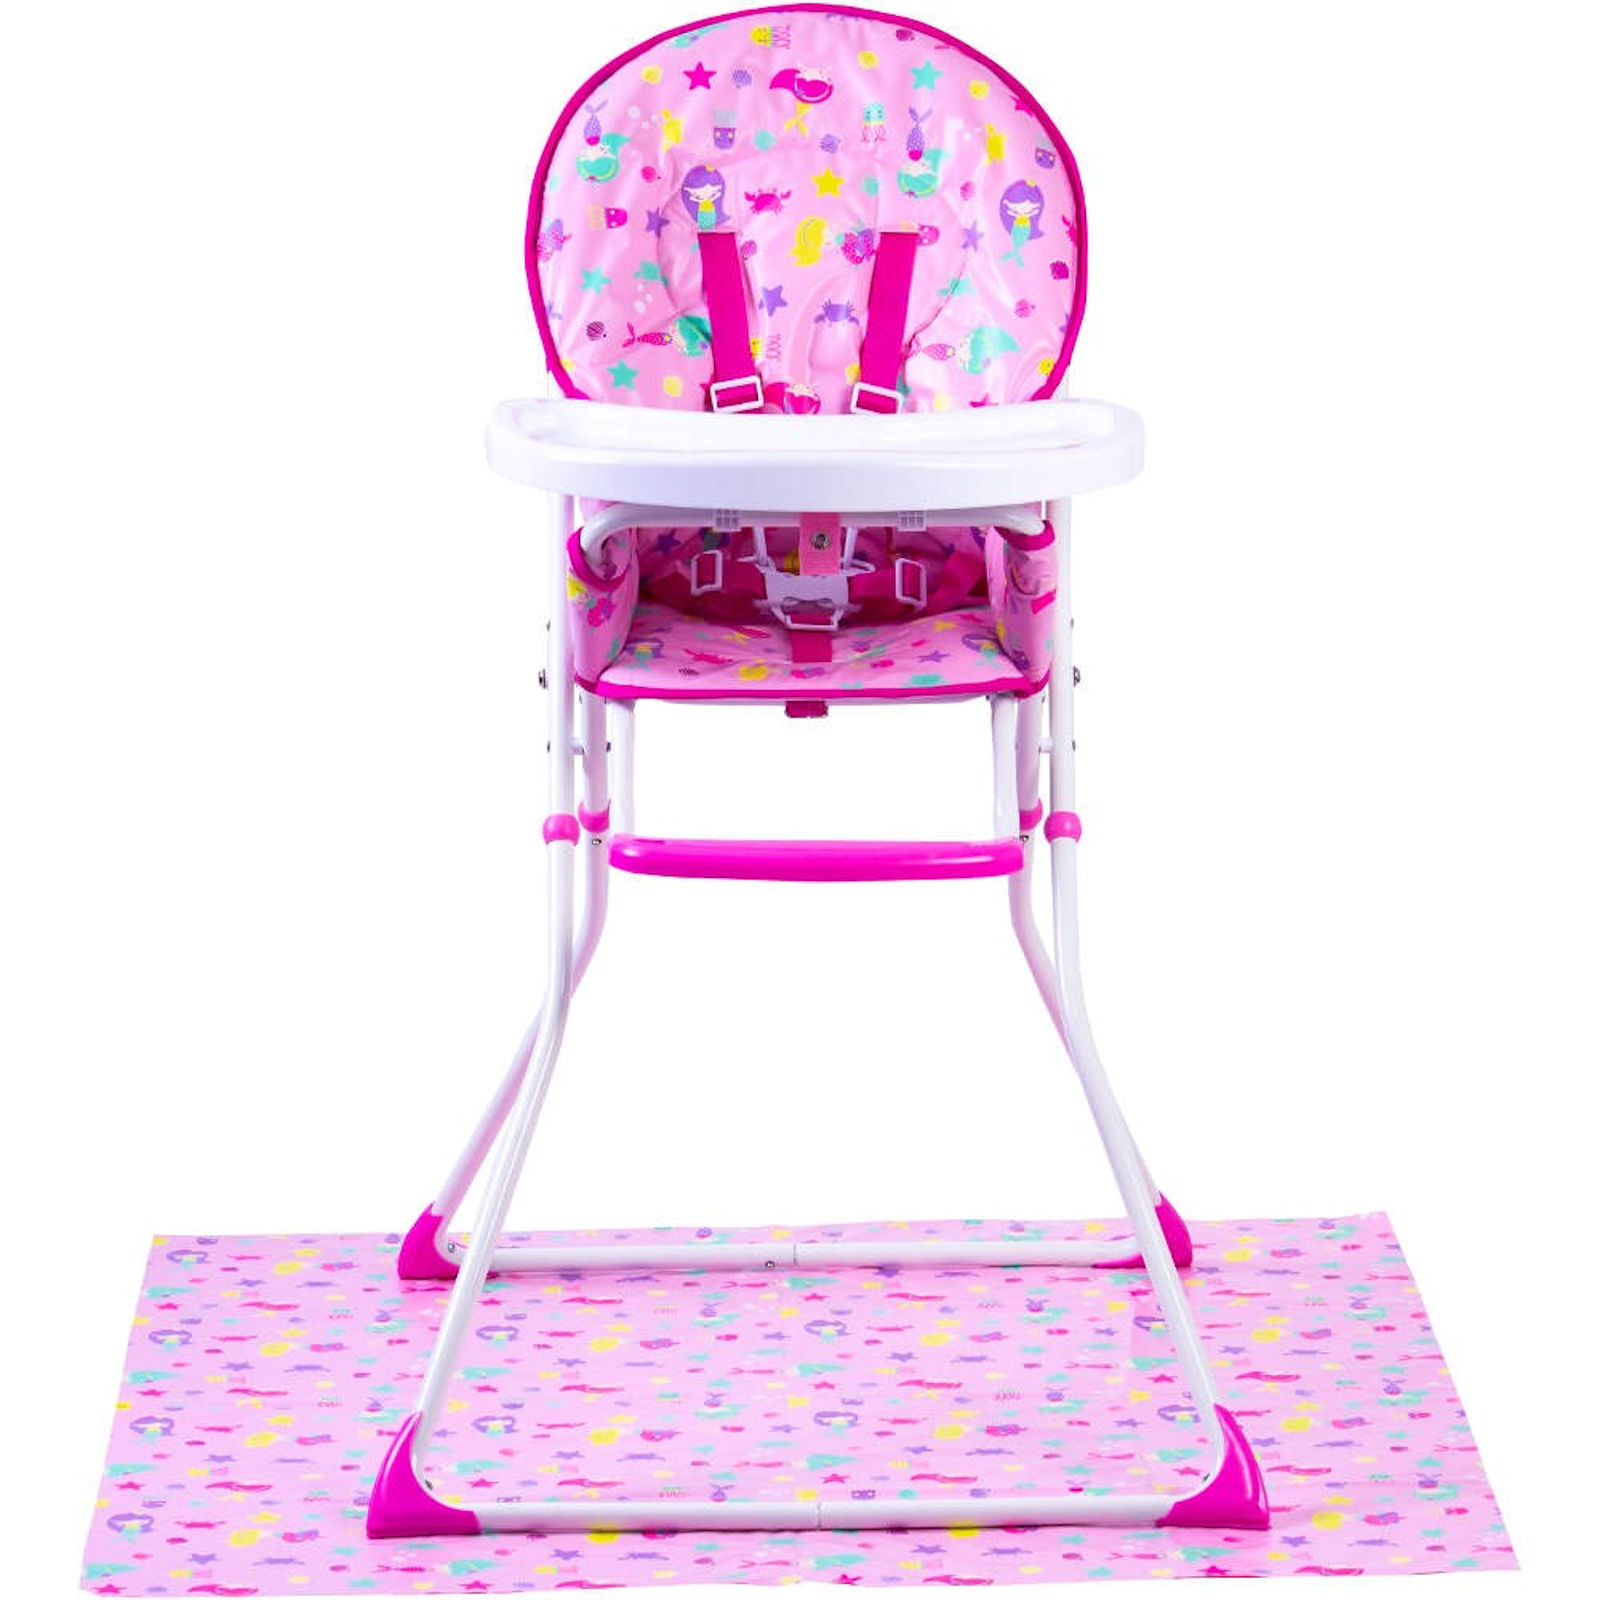 Pleasing Red Kite Feed Me Compact Highchair Splash Mat Mermaid Dailytribune Chair Design For Home Dailytribuneorg